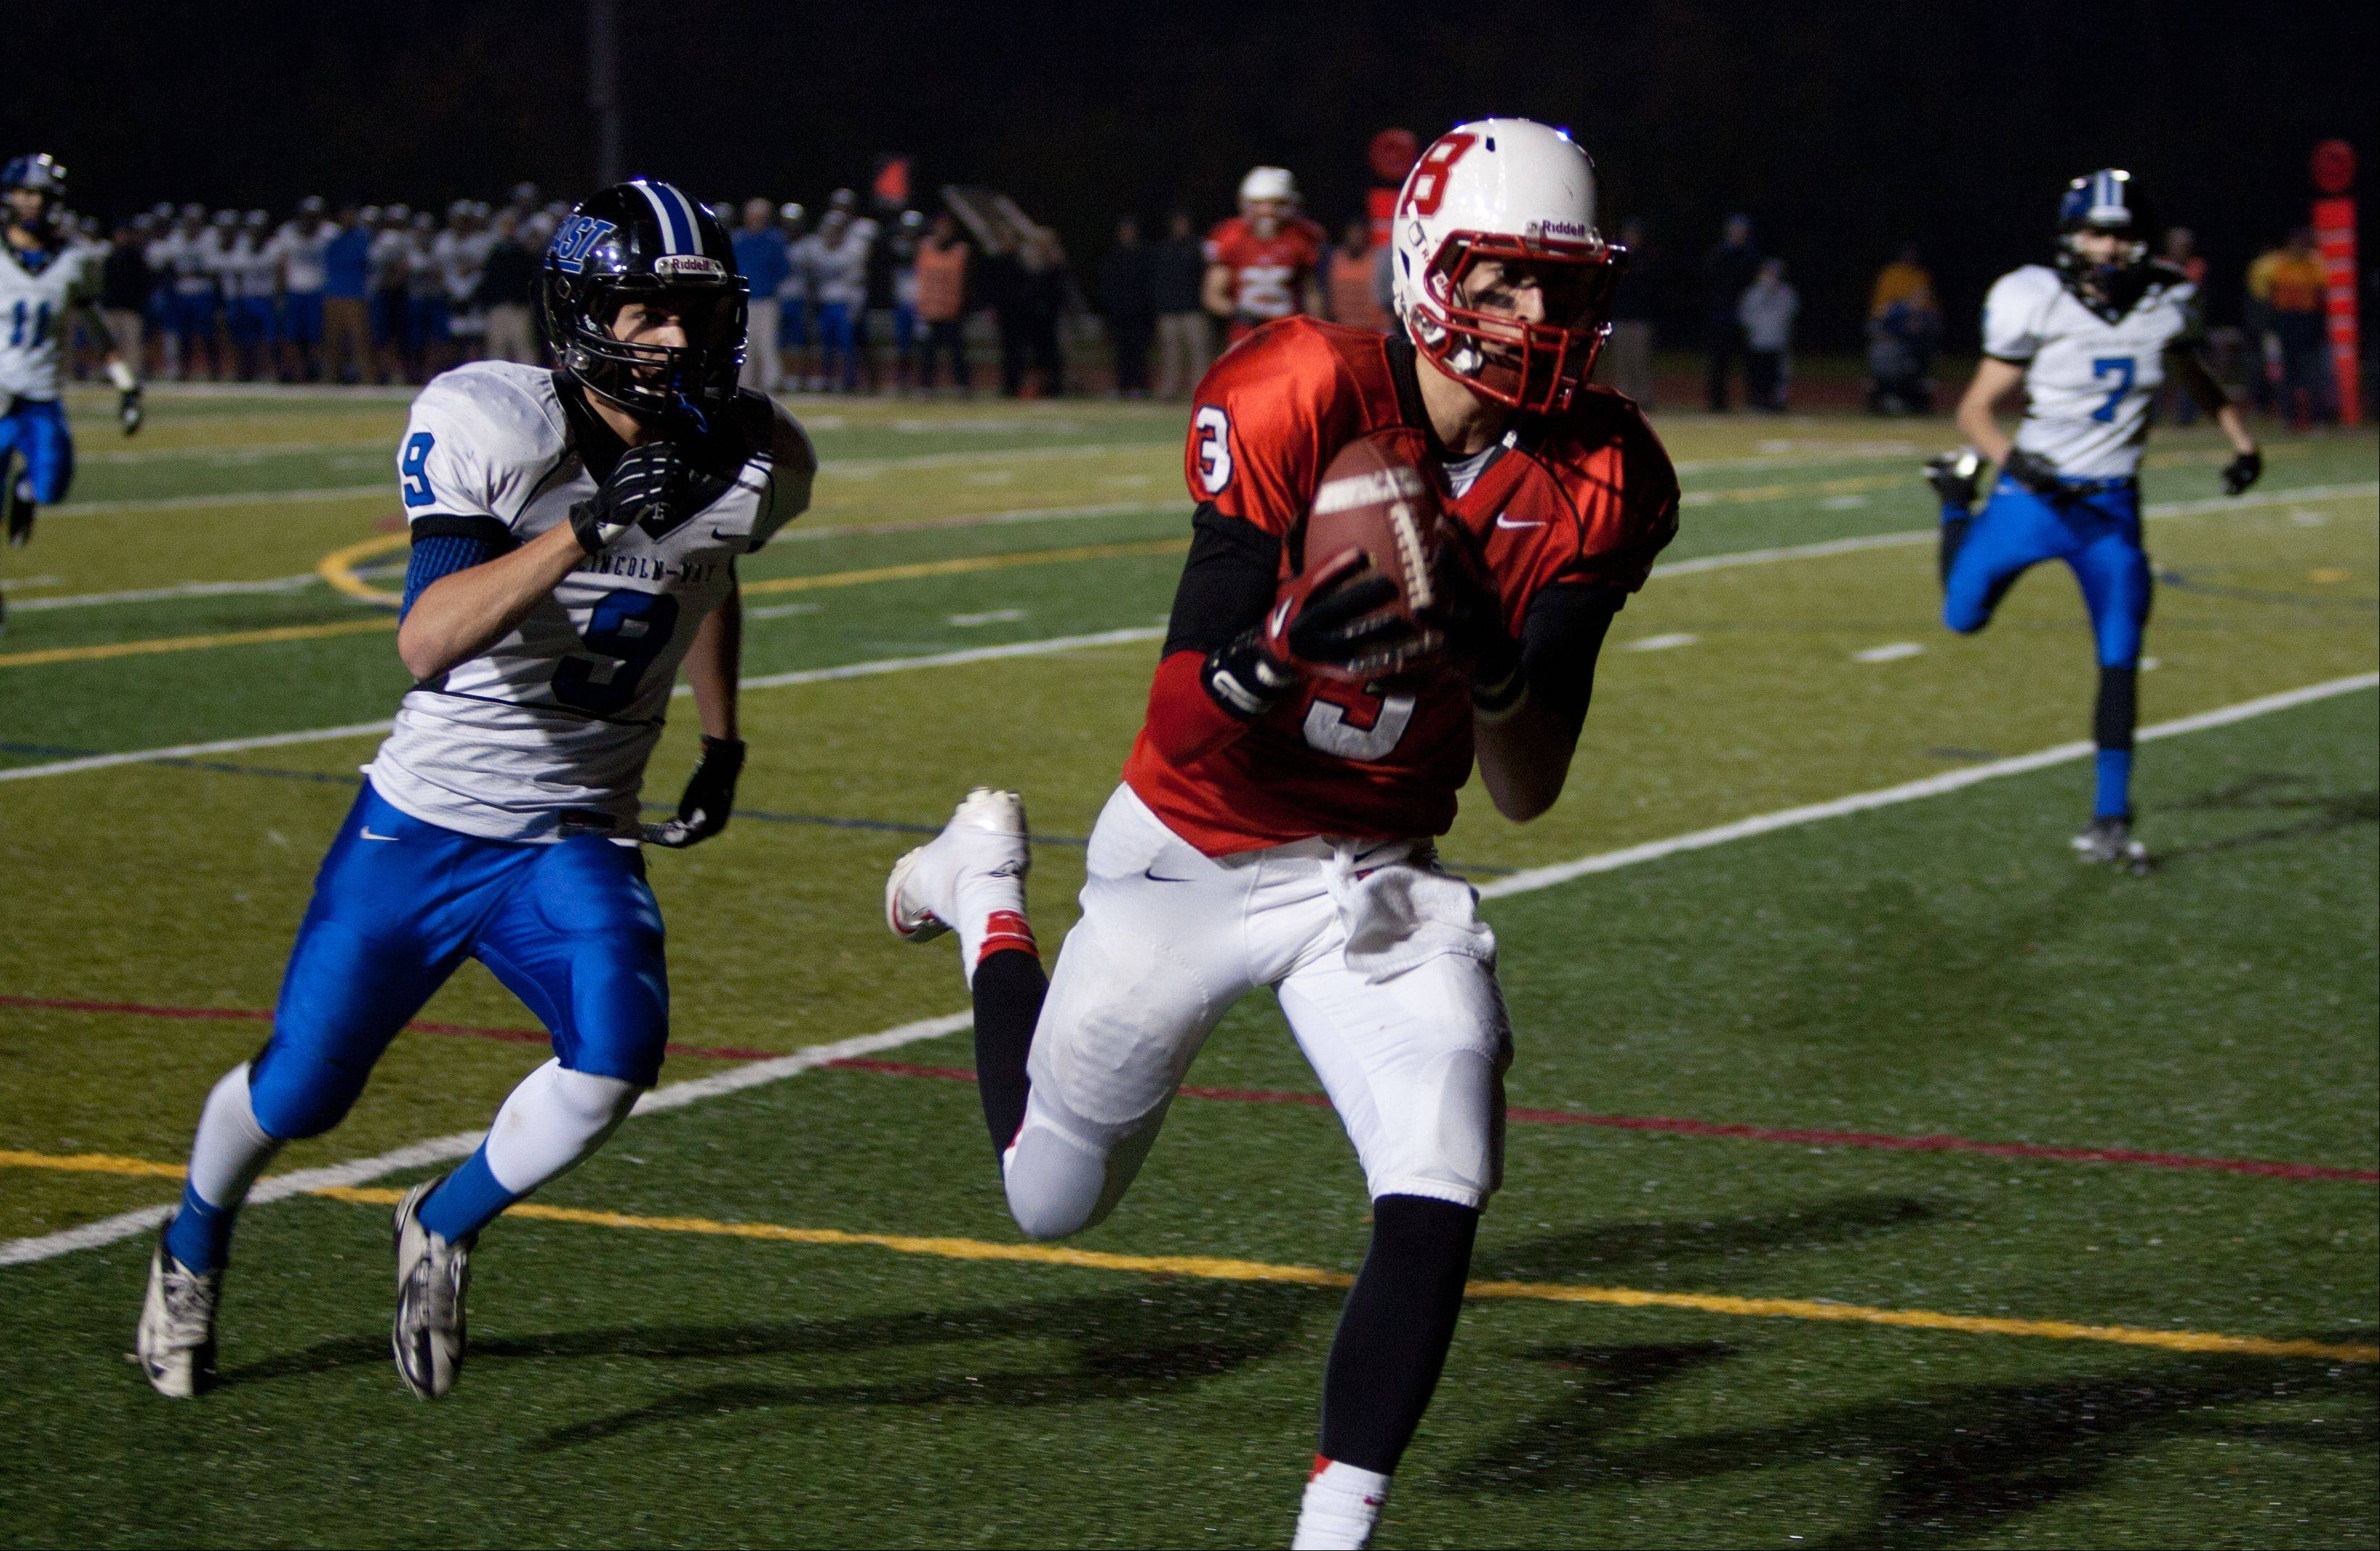 Benet's Cinderella season ends in semifinals